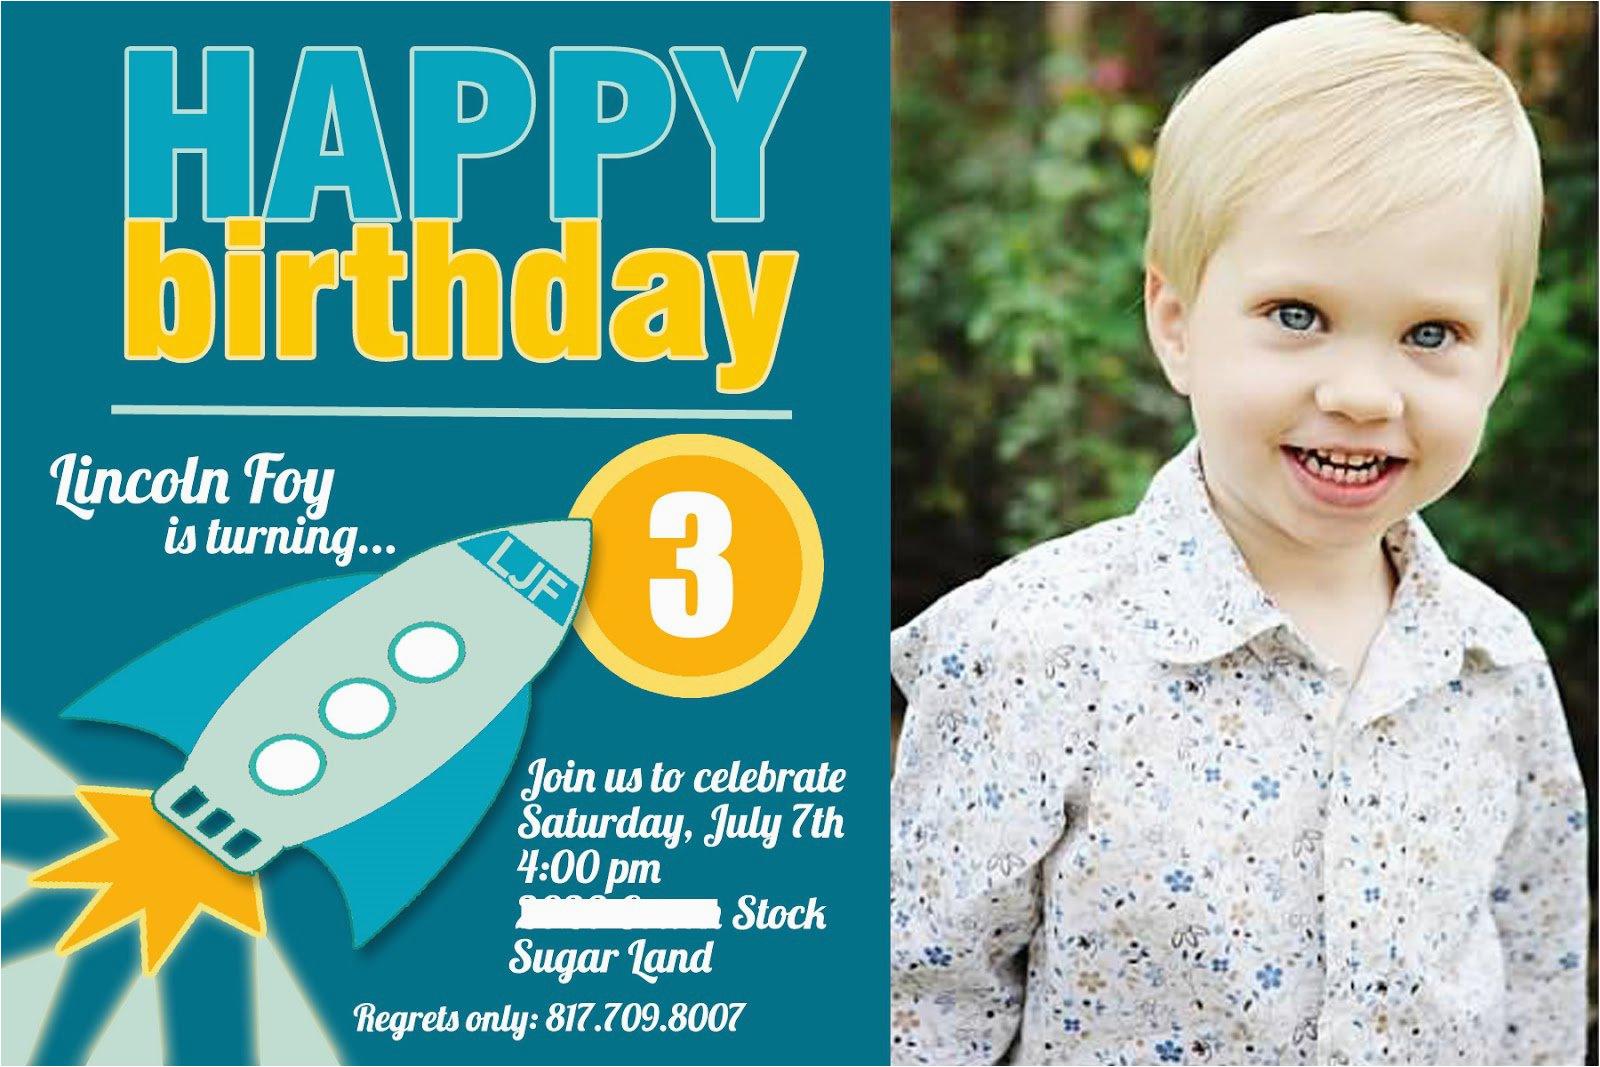 Birthday Invitation Wording For 5 Year Old Boy Best